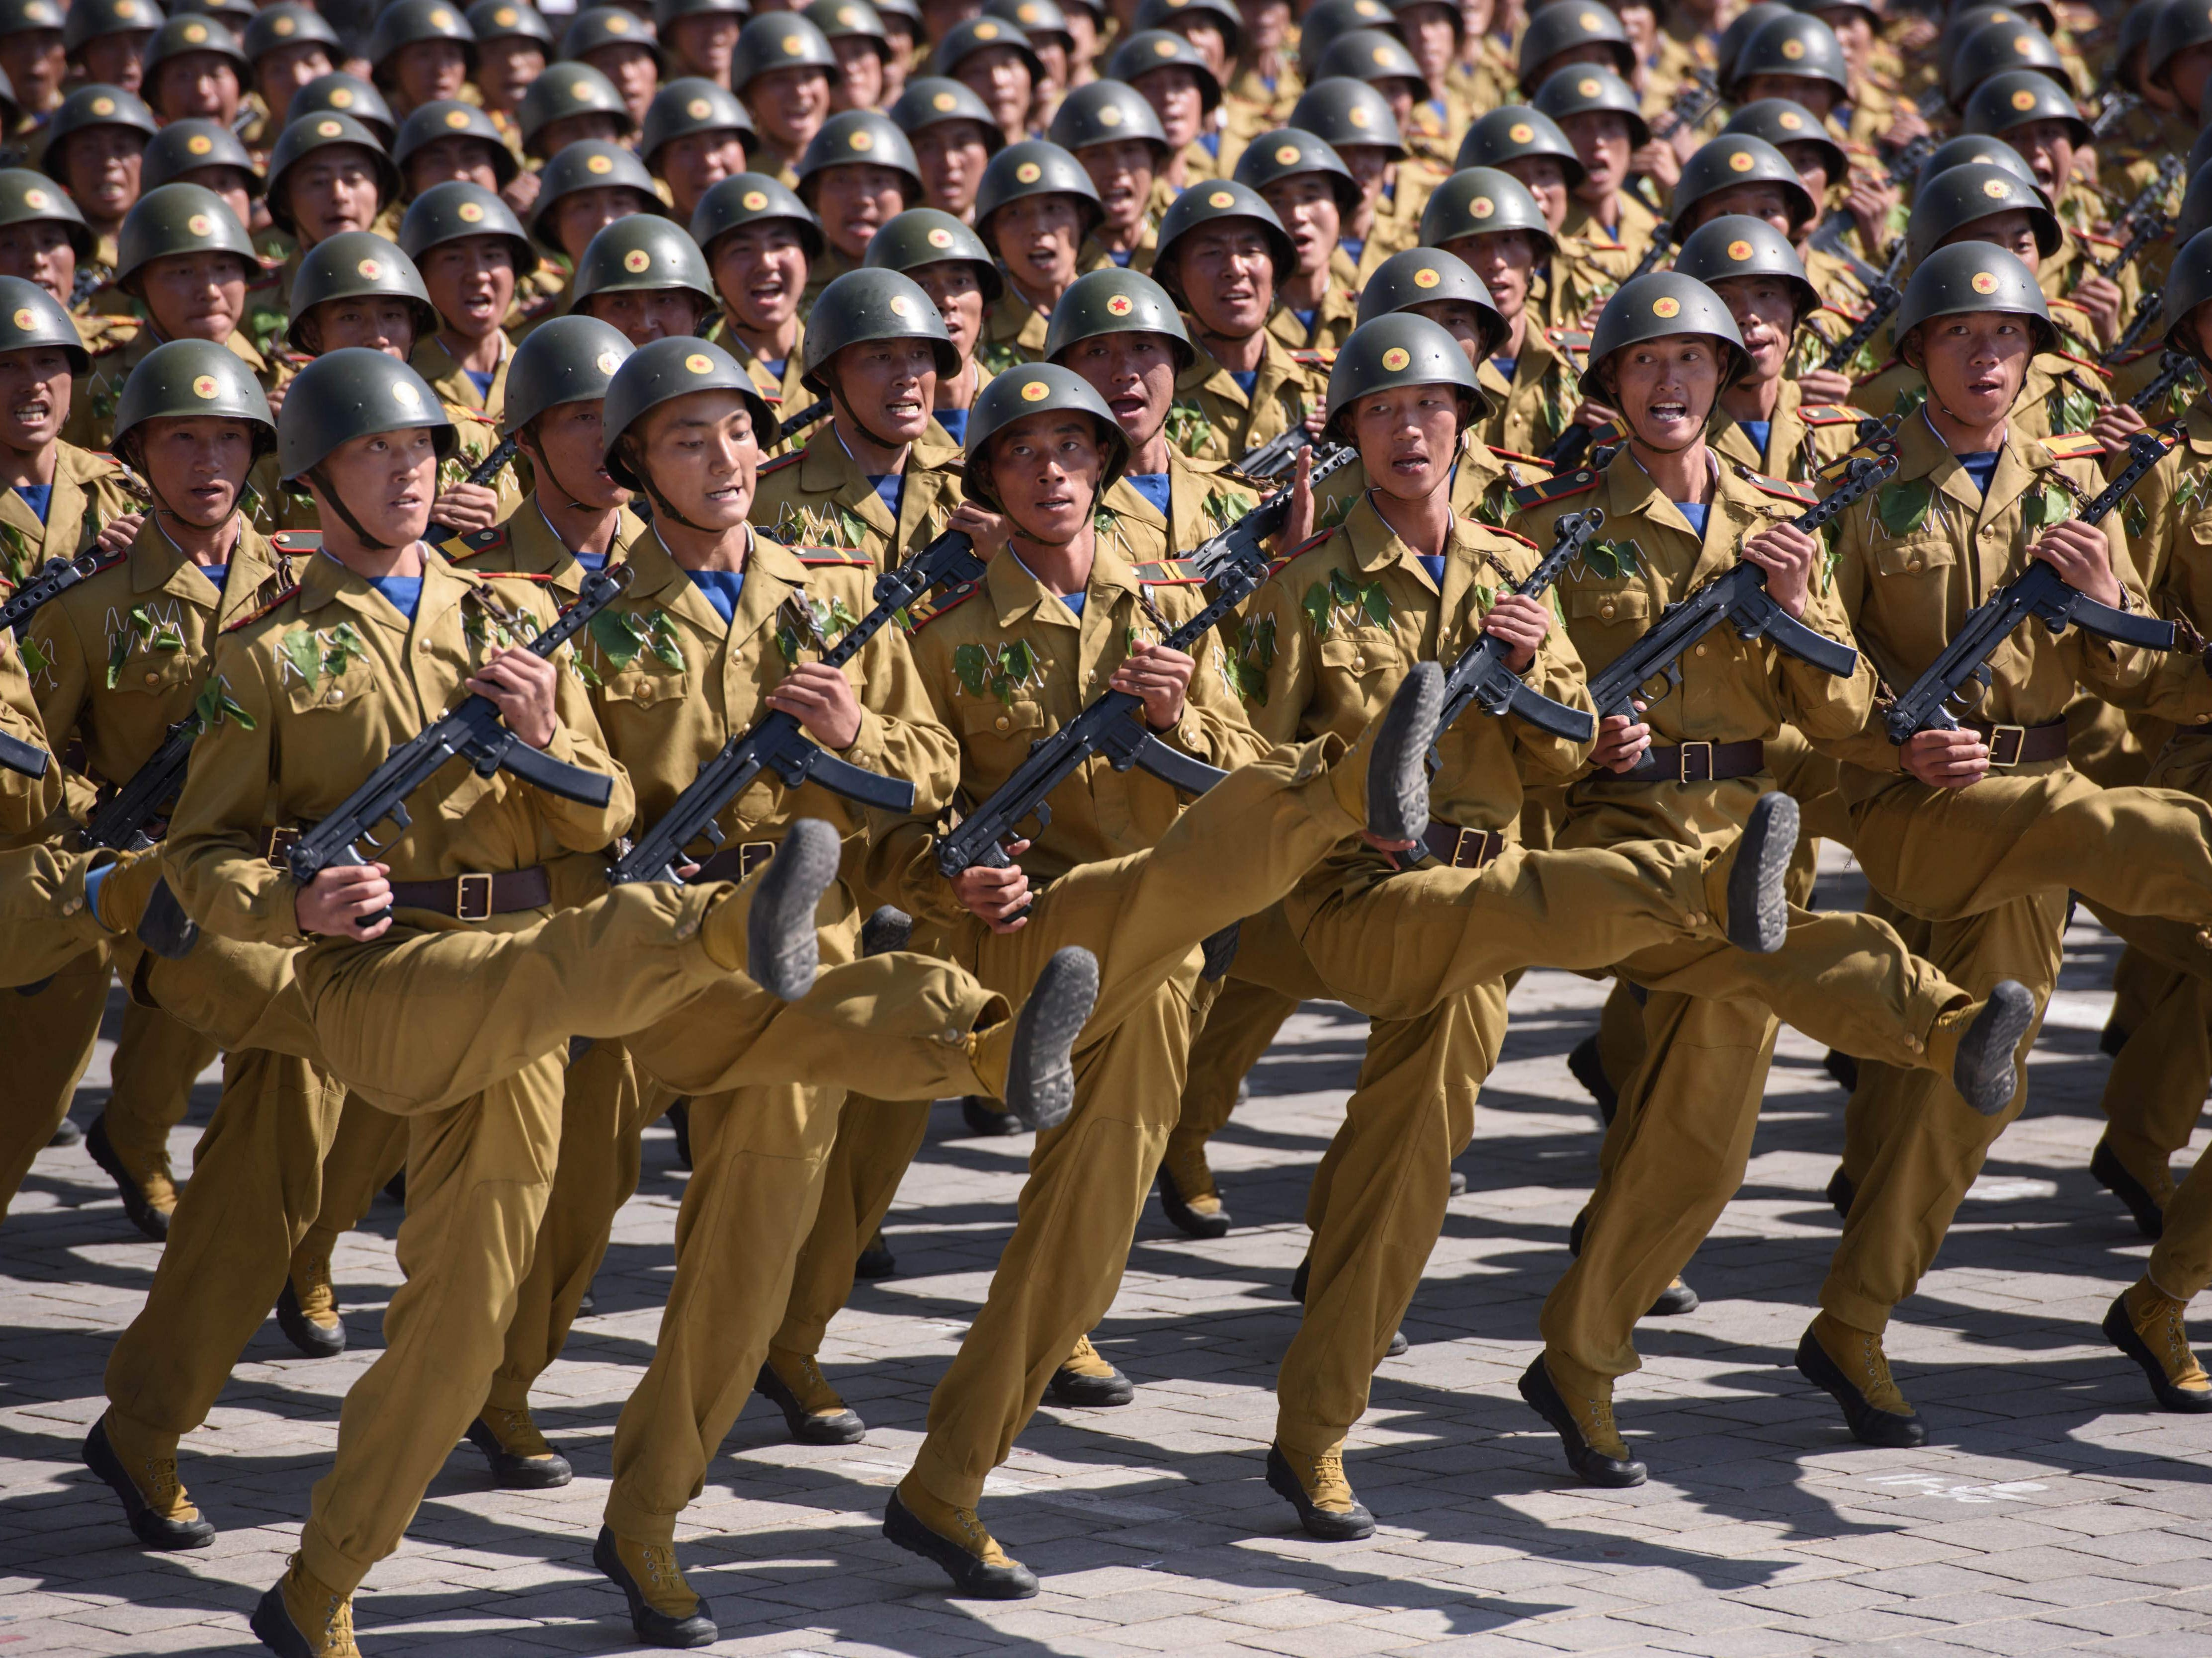 Korean People's Army soldiers march during a mass rally on Kim Il Sung square in Pyongyang on Sept. 9, 2018. North Korea held a military parade to mark its 70th birthday, but refrained from showing off the intercontinental ballistic missiles that have seen it hit with multiple international sanctions.